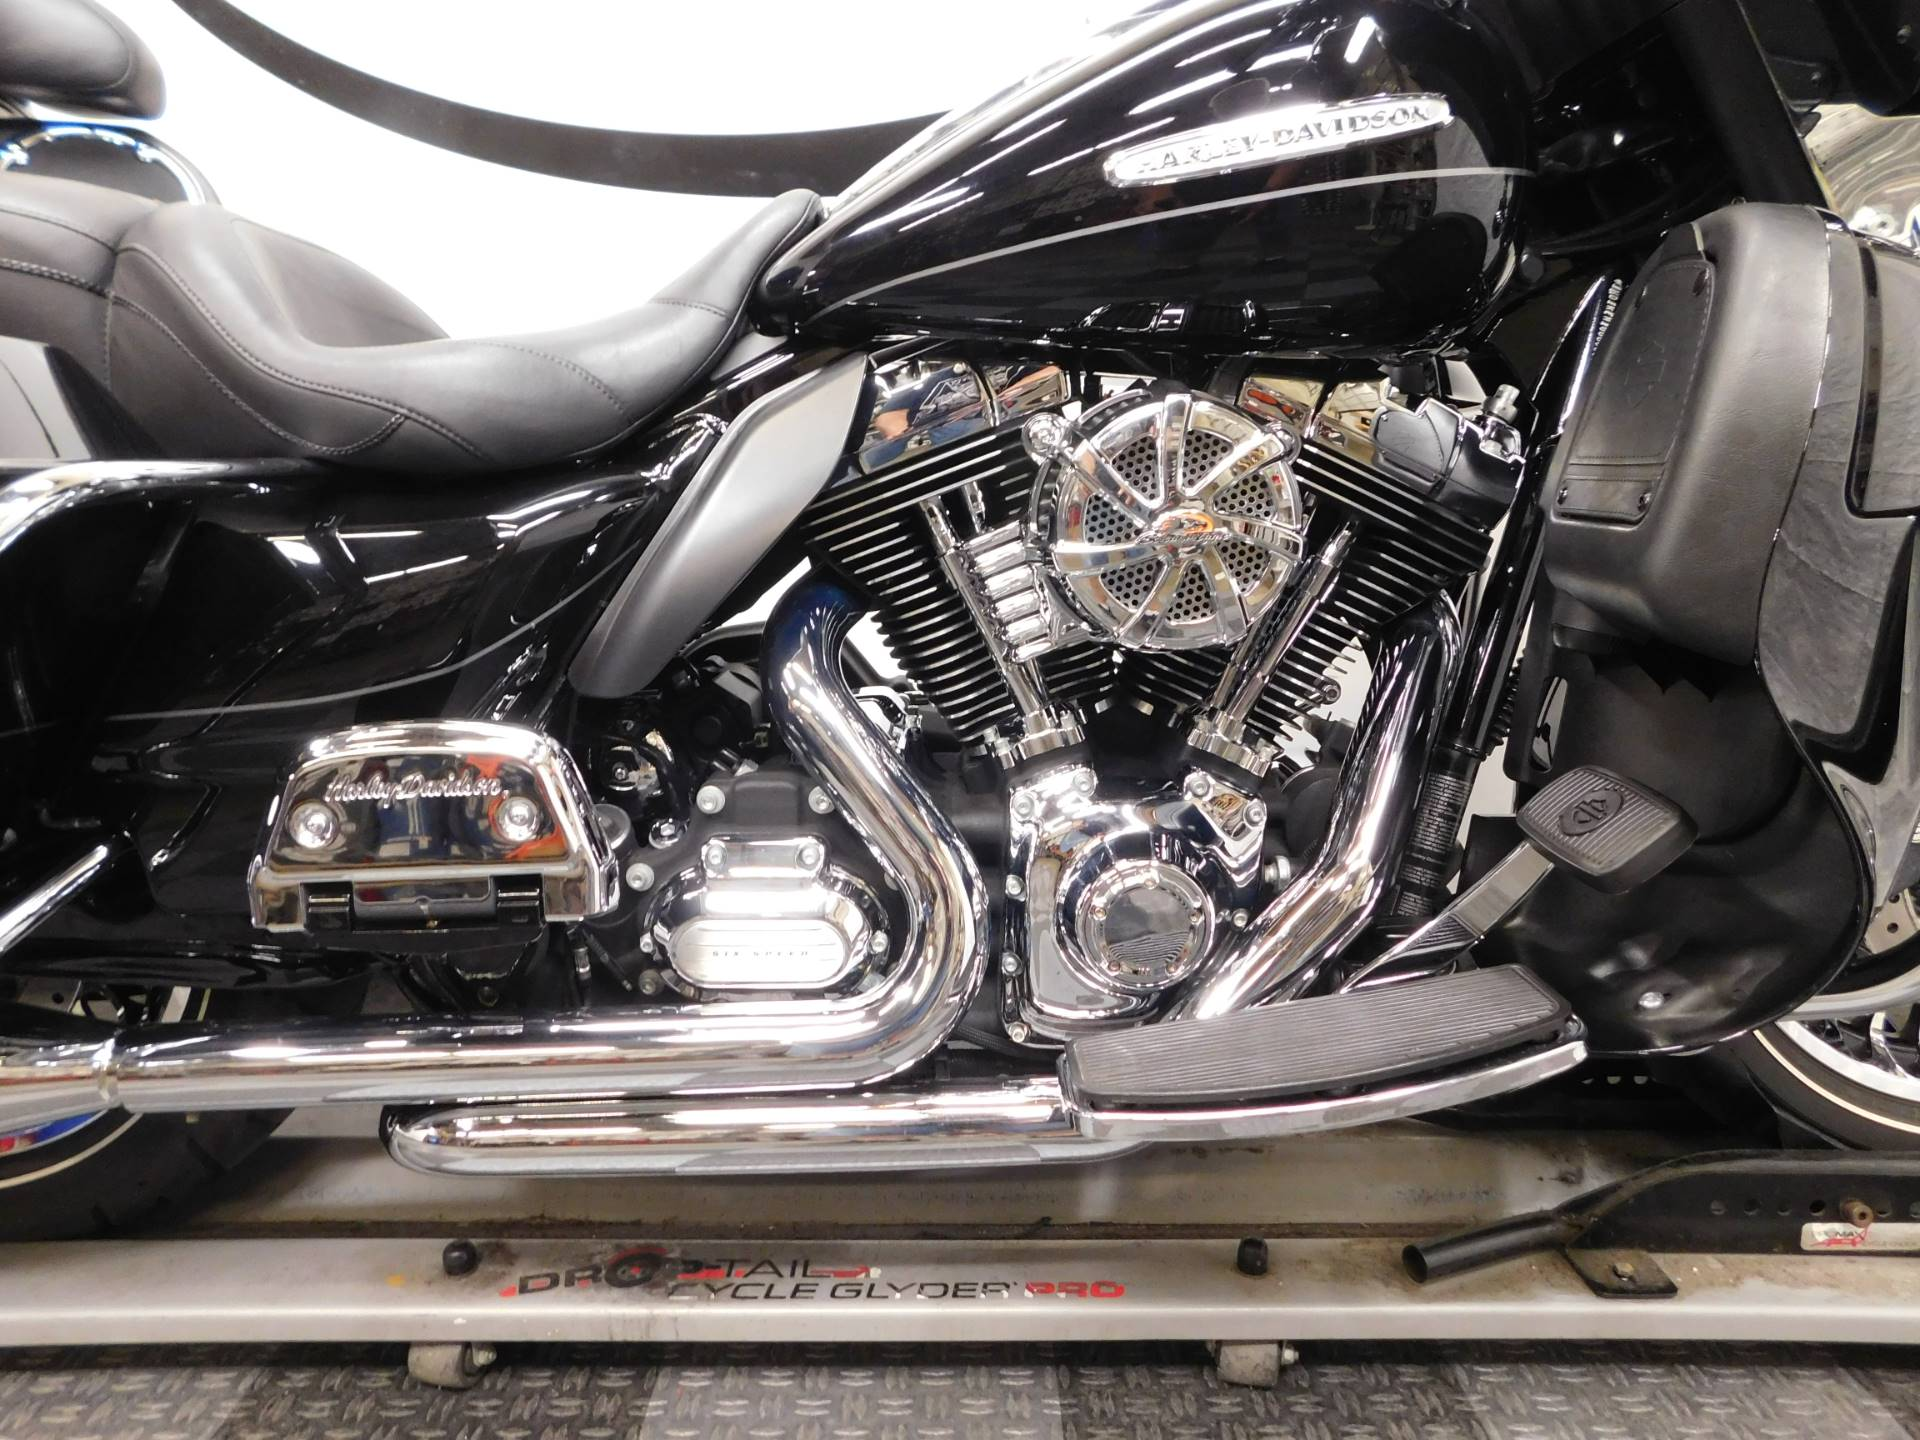 Used 2013 Harley Davidson Electra Glide Ultra Limited Motorcycles In Eden Prairie Minnesota